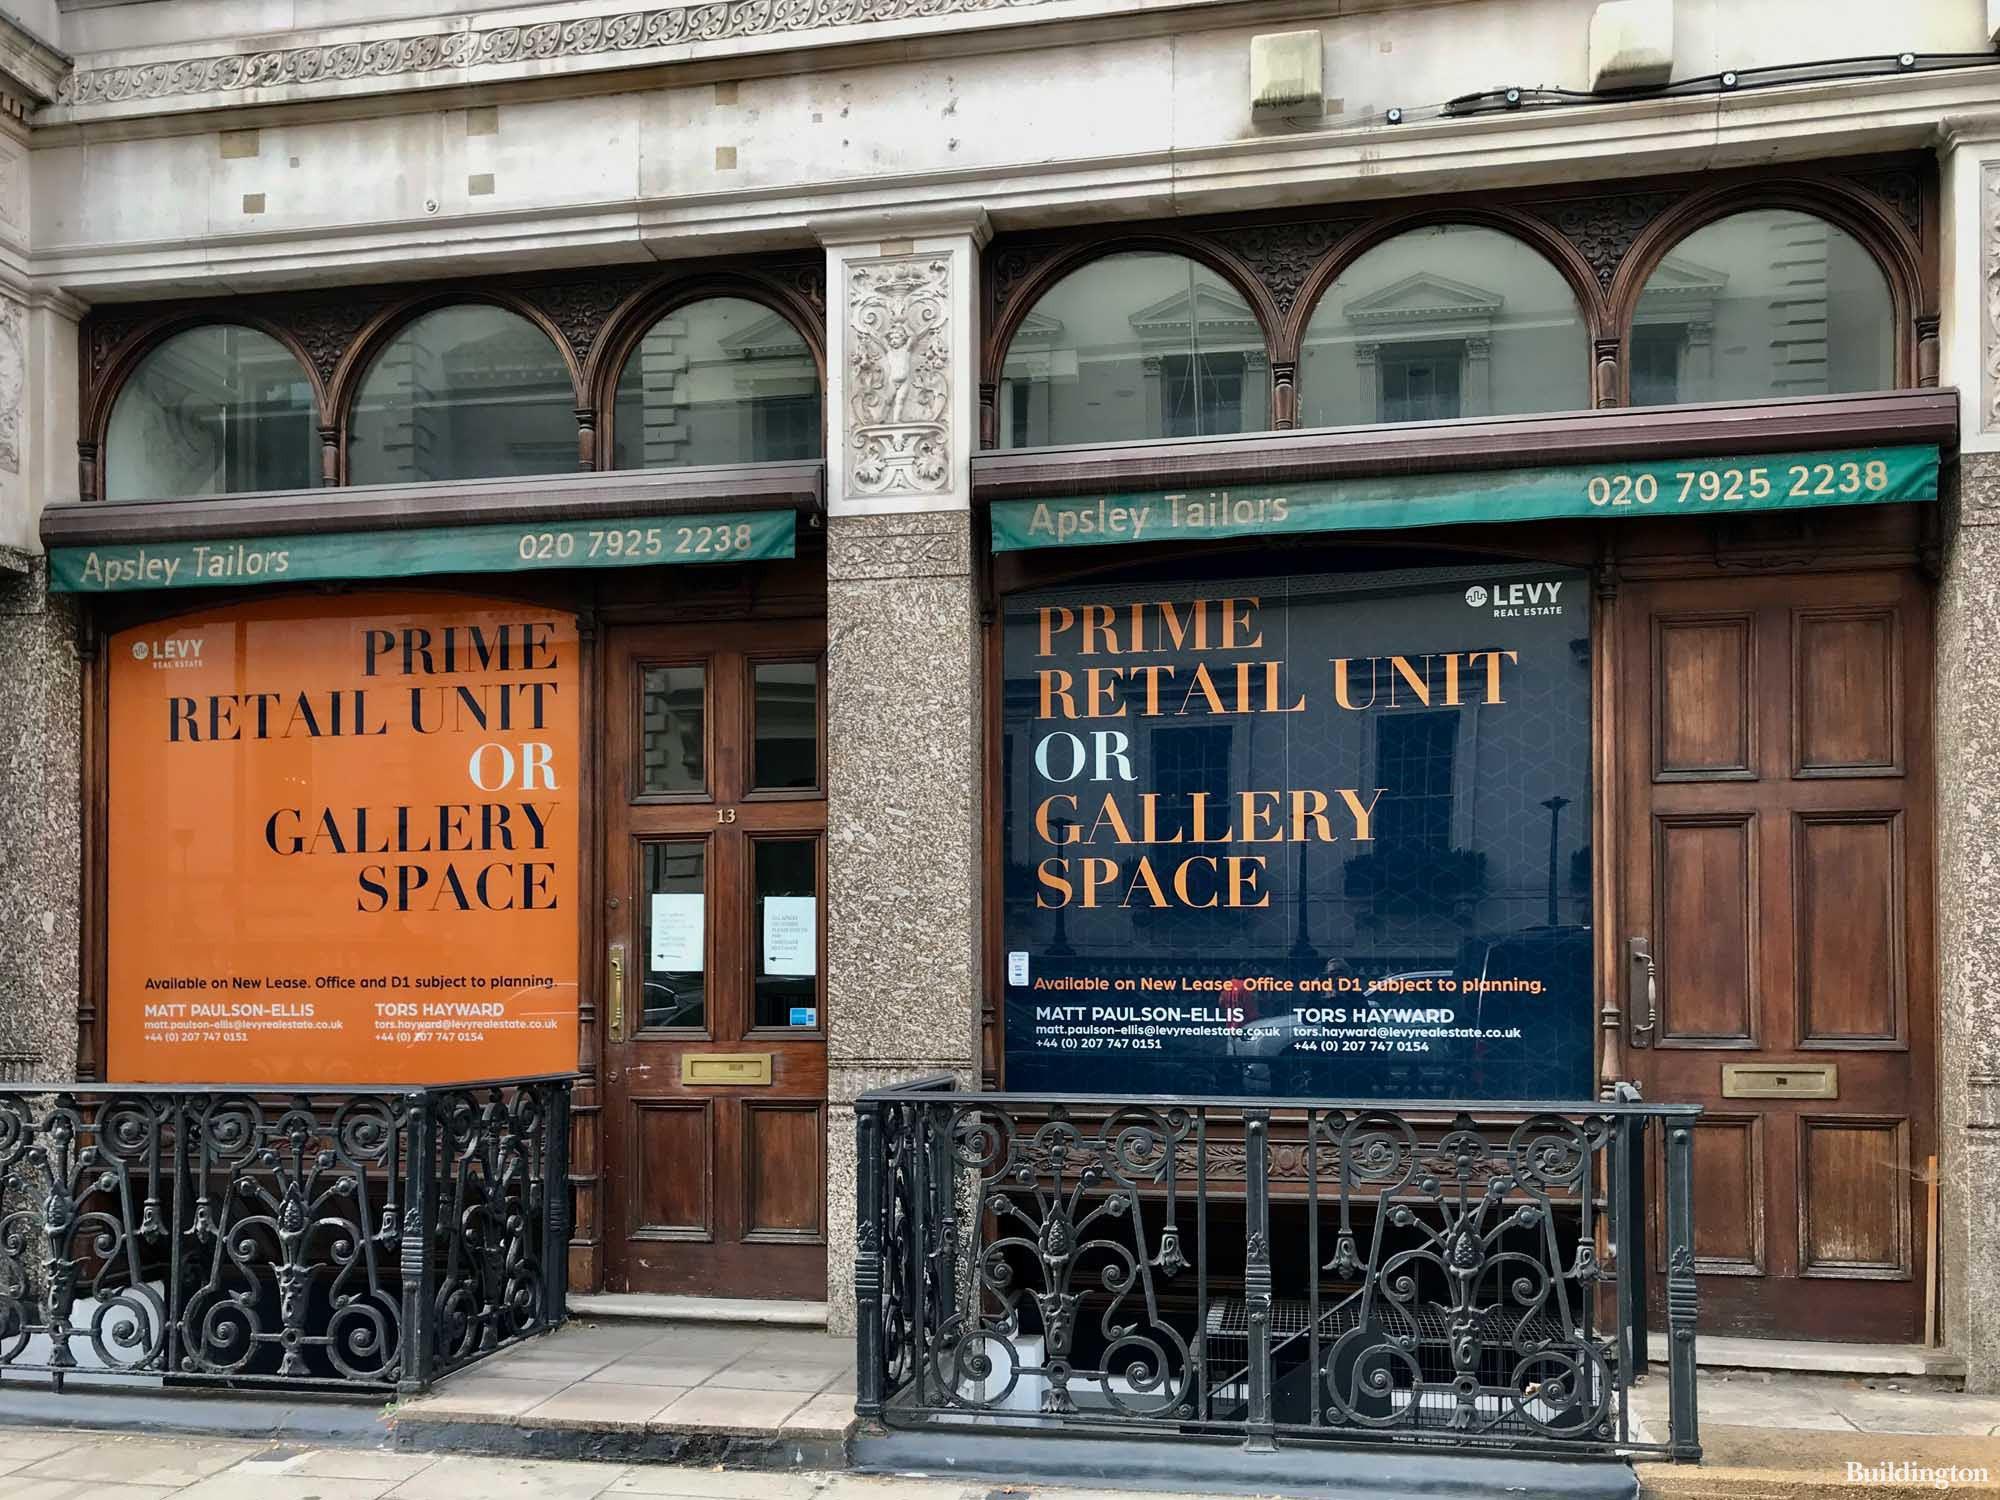 Prime retail unit or gallery space to let. Available on new lease. Office and D1 subject to planning. Advertised by LEVY.